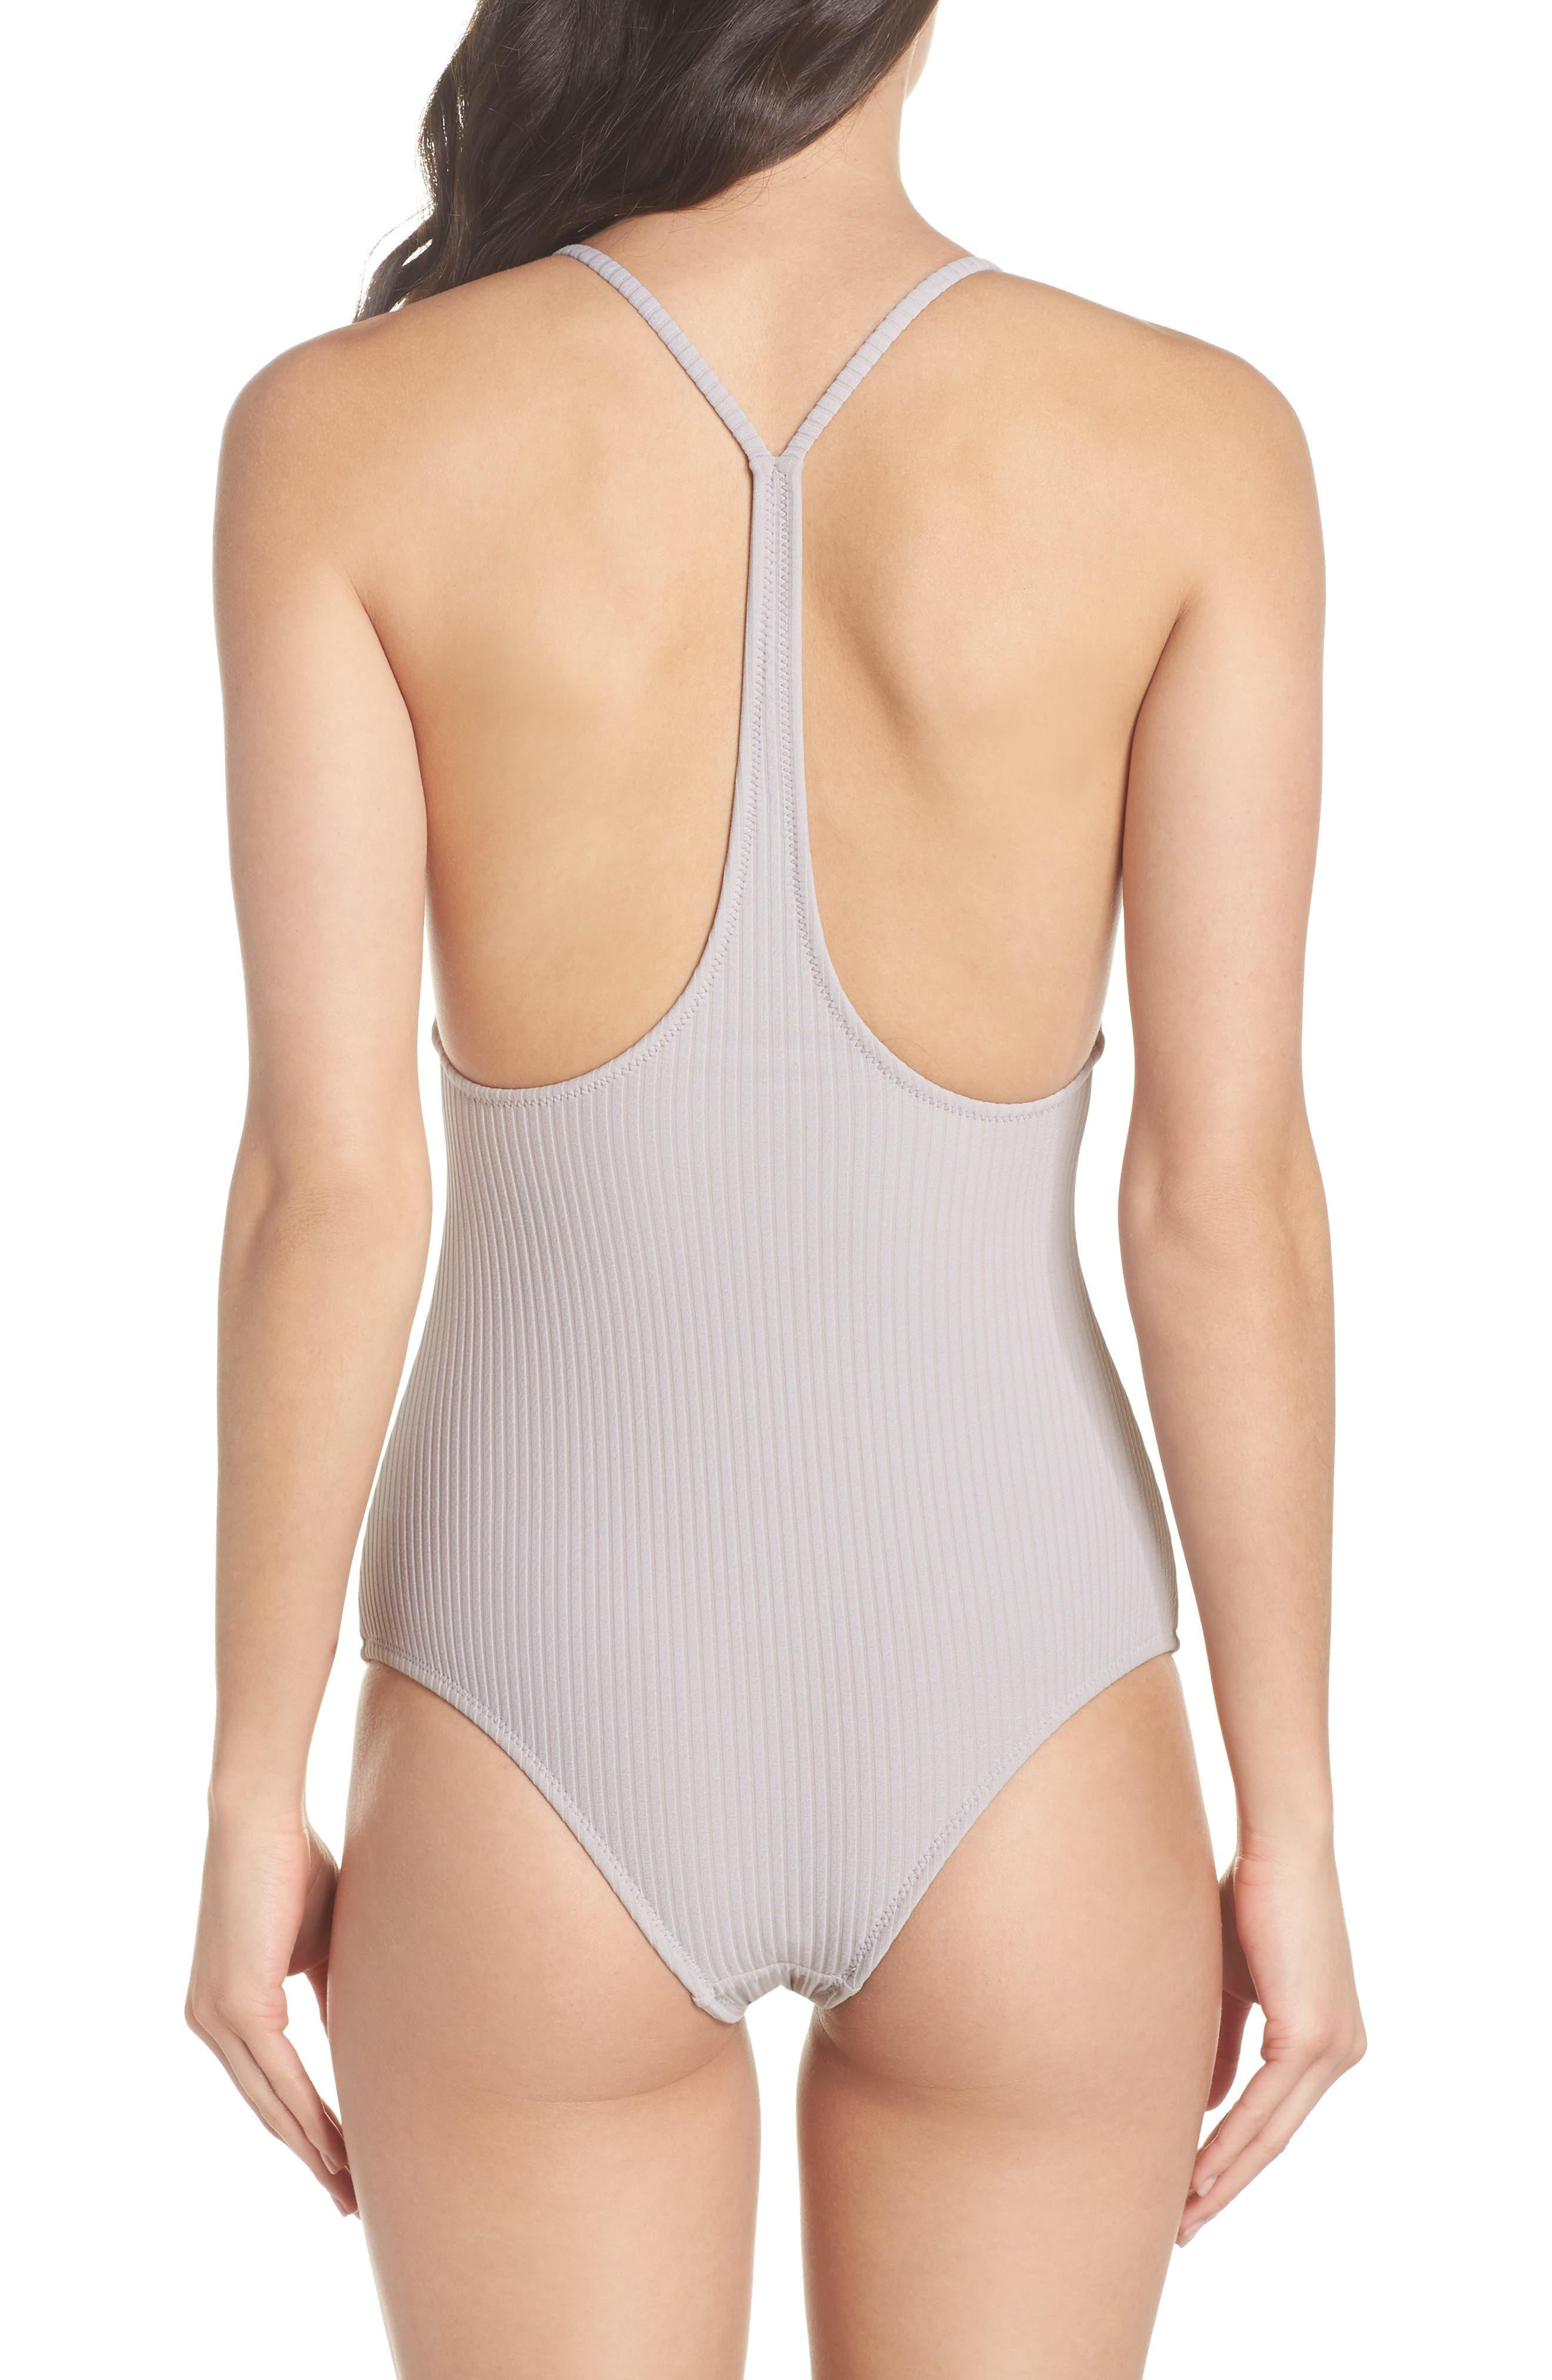 Traveler One-Piece Swimsuit,                             Alternate thumbnail 2, color,                             Dove Rib